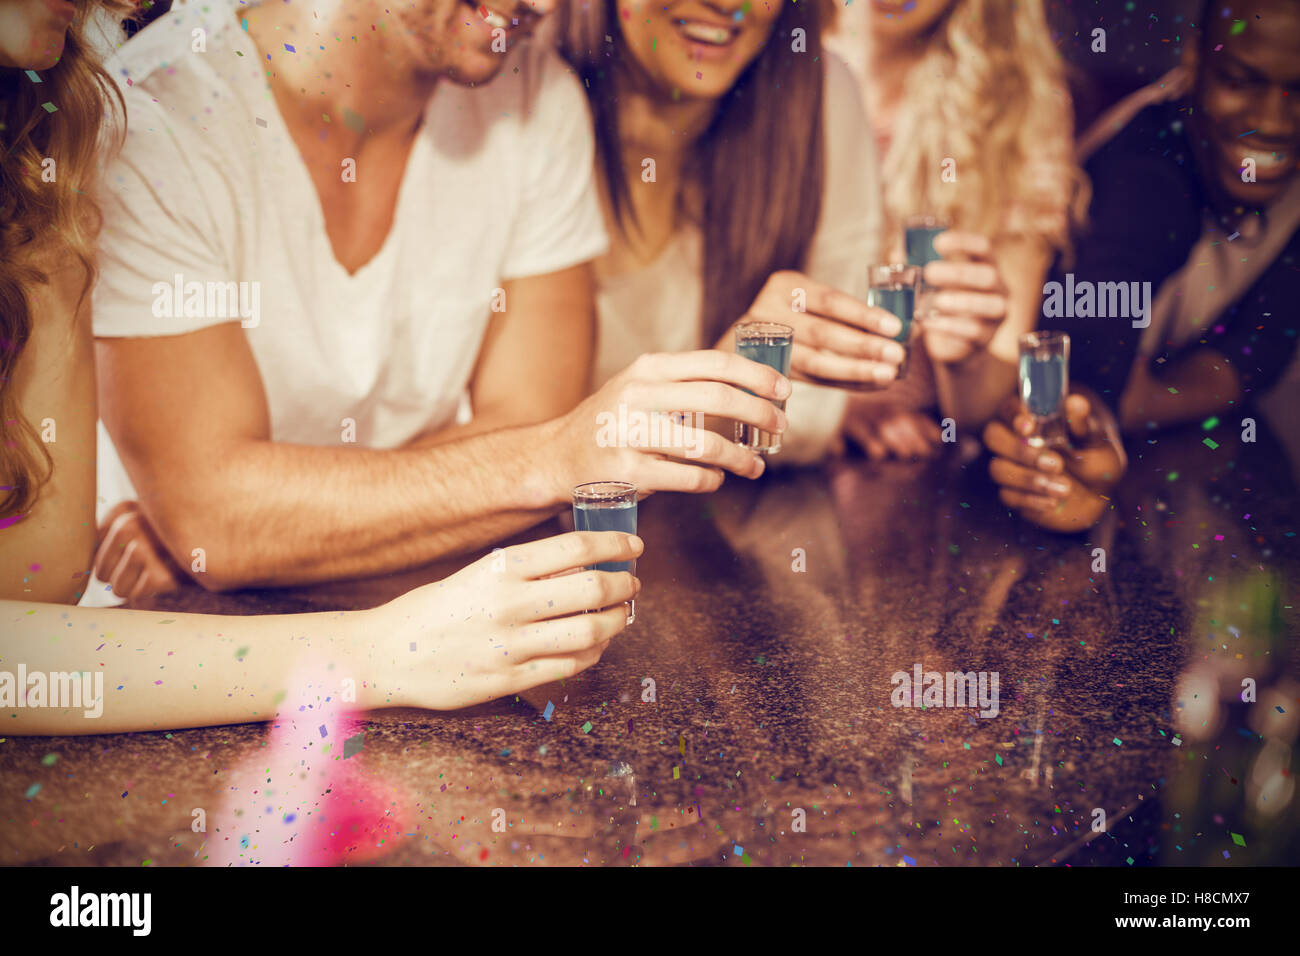 Composite image of cropped image of hands having shots - Stock Image